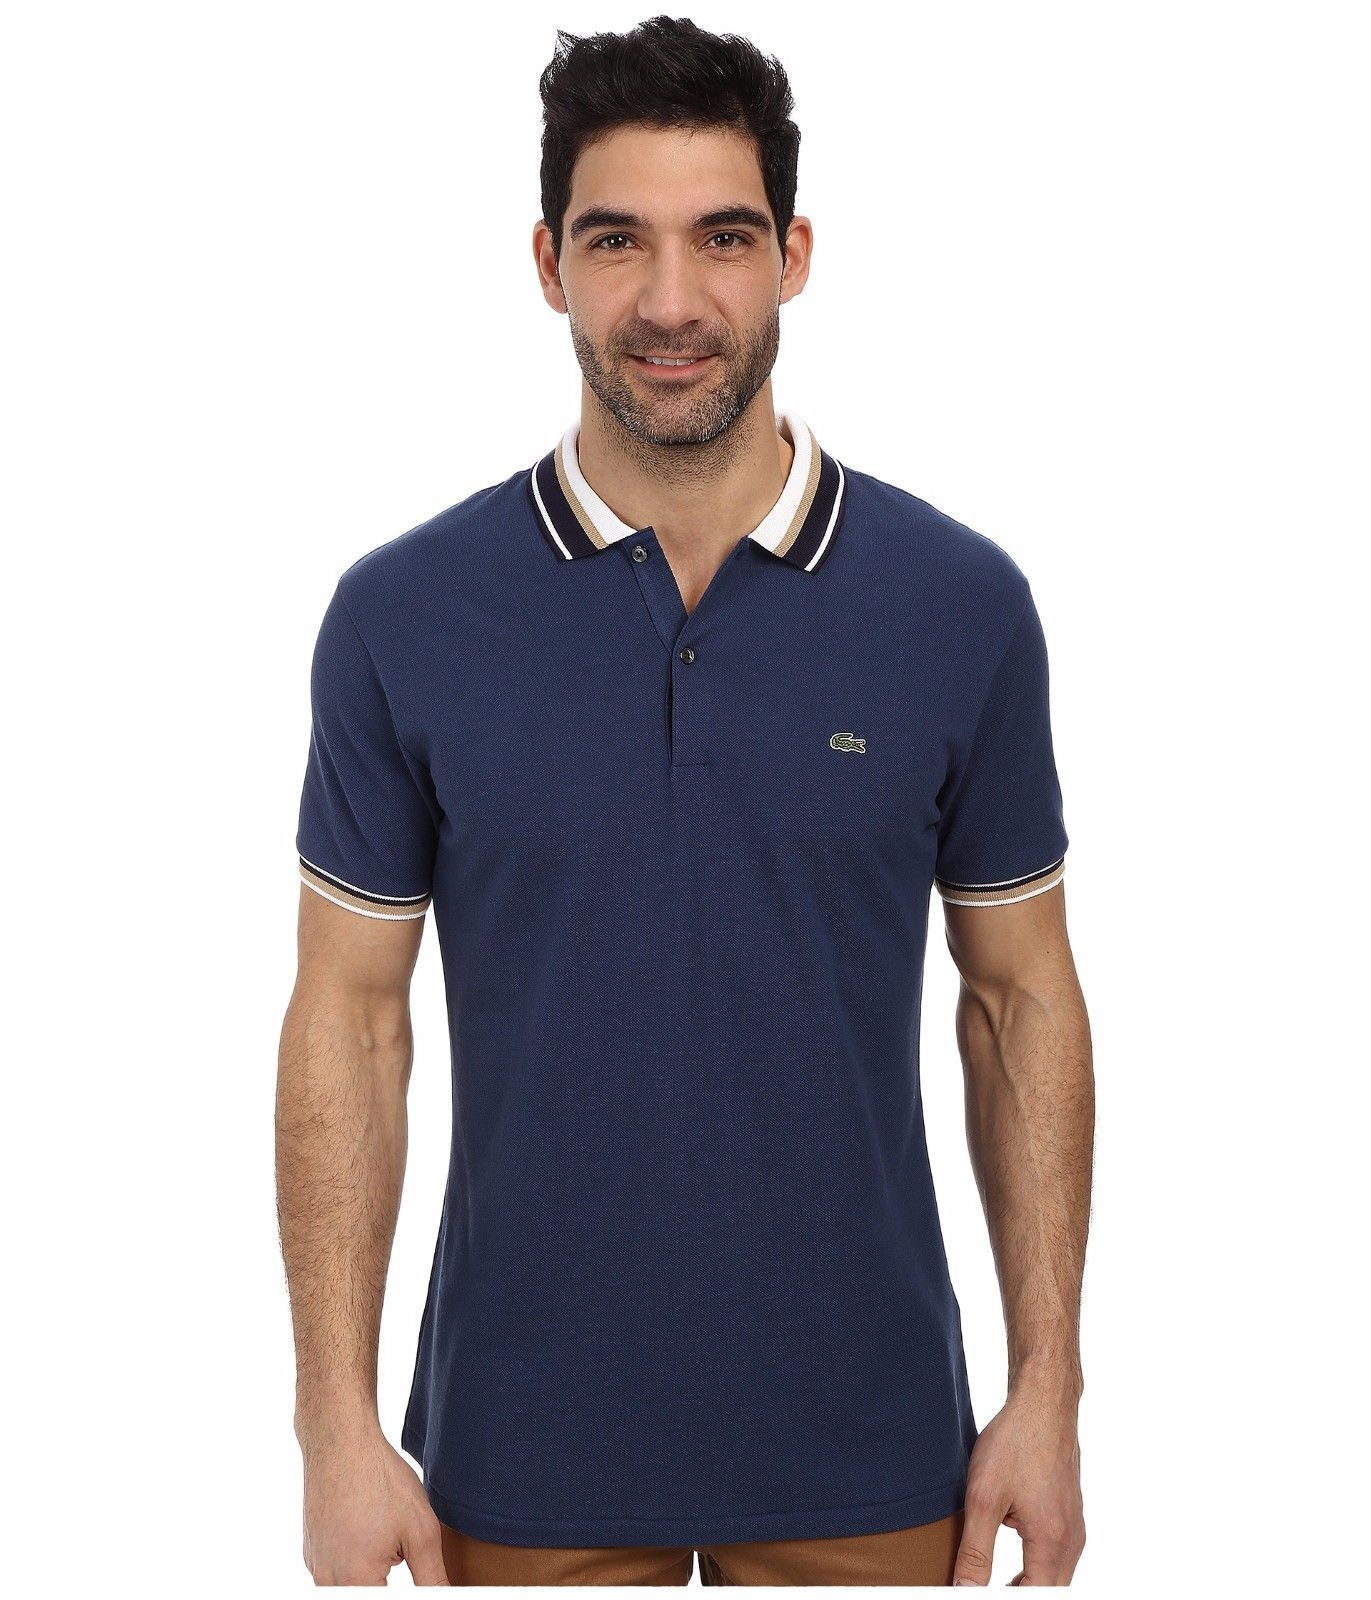 Lacoste Slim Fit Pique Polo with Neo-Piping - $110.00